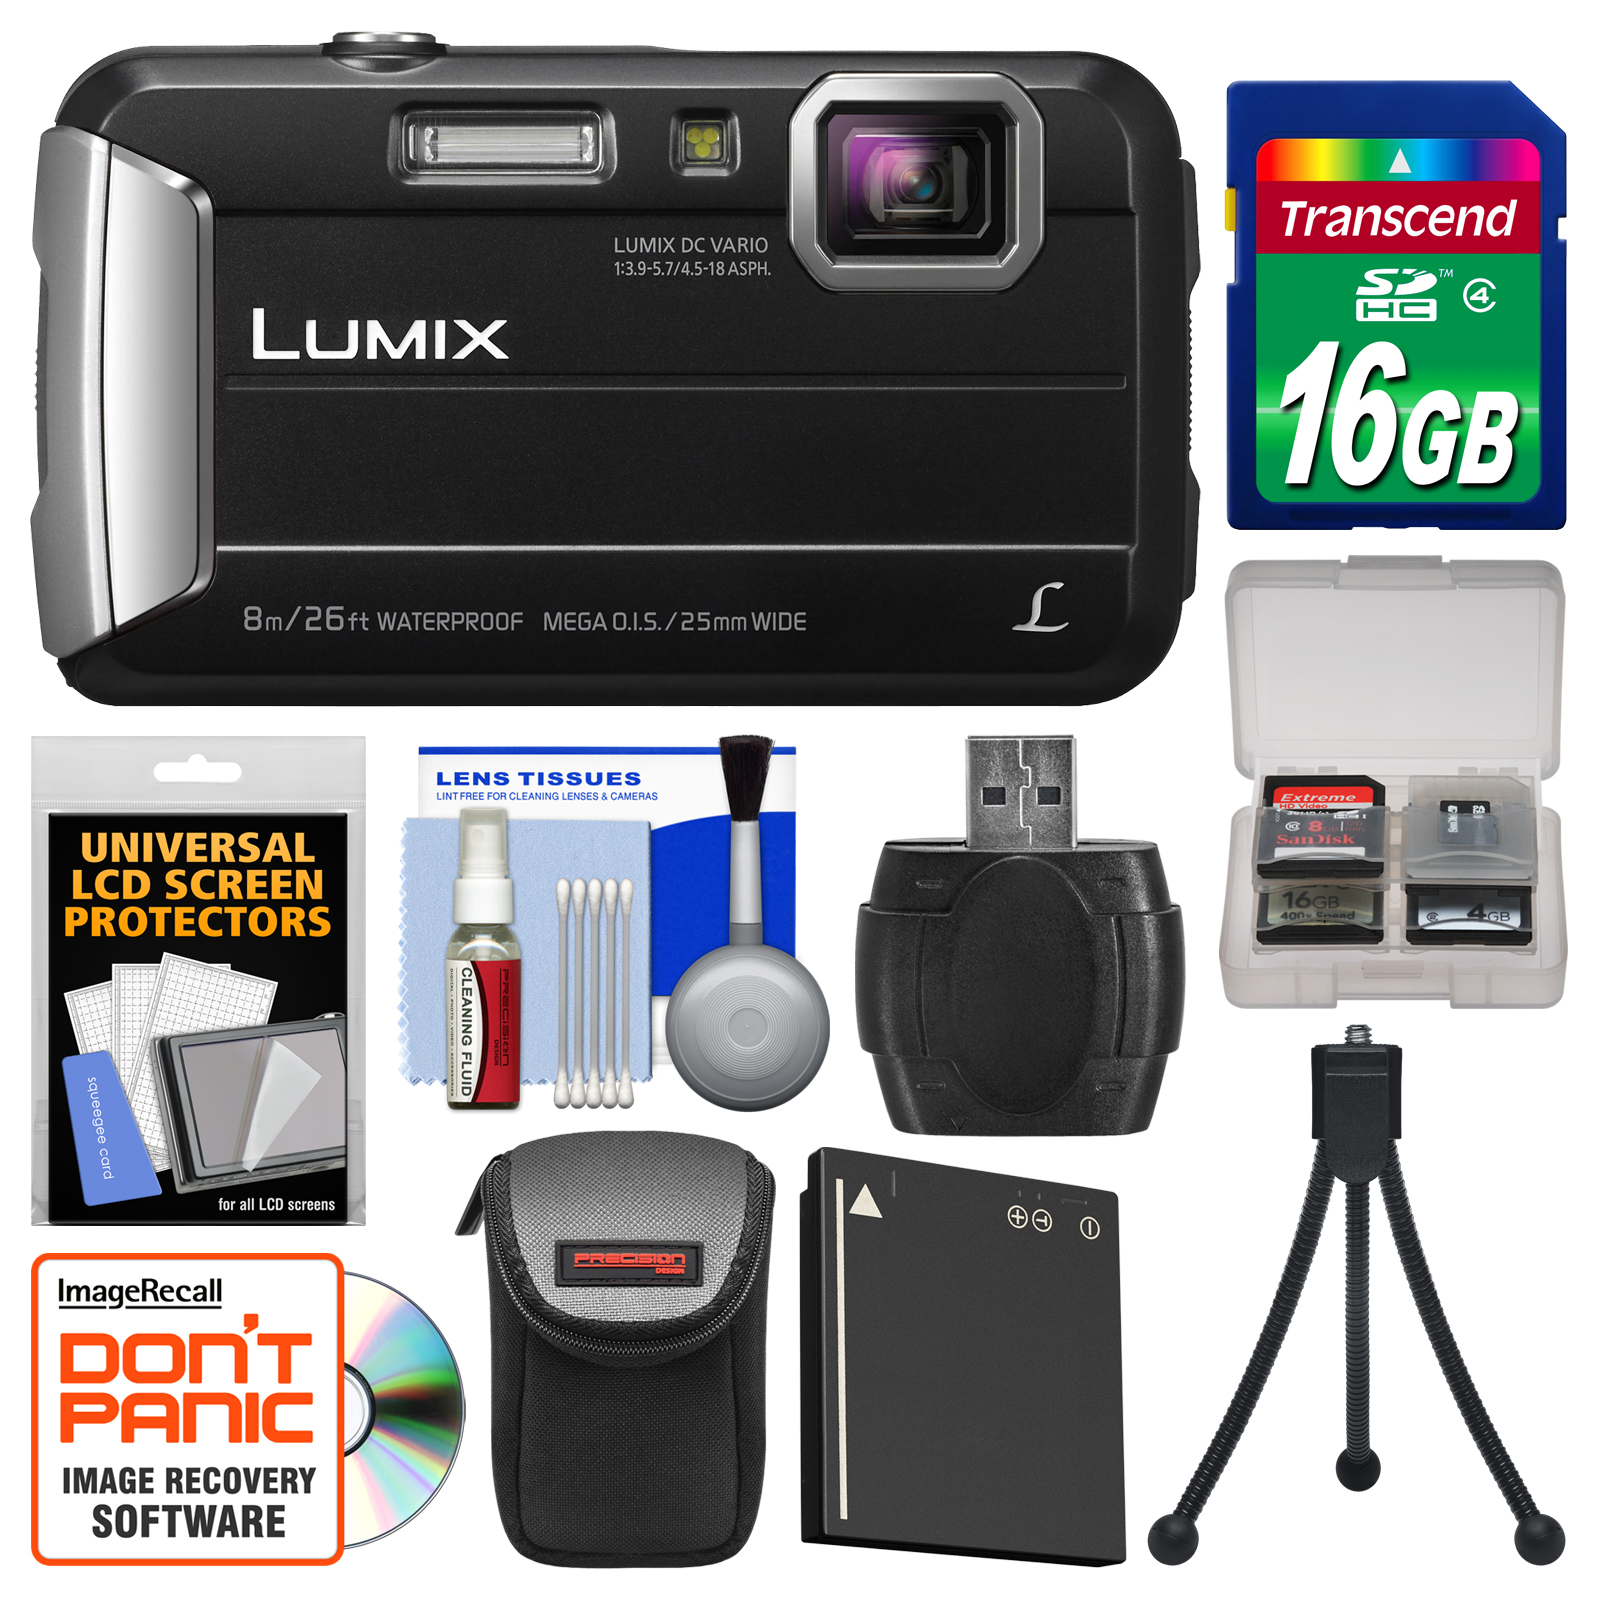 Panasonic Lumix DMC-TS30 Tough Shock & Waterproof Digital Camera (Red) with 16GB Card + Case + Battery + Flex Tripod + Kit